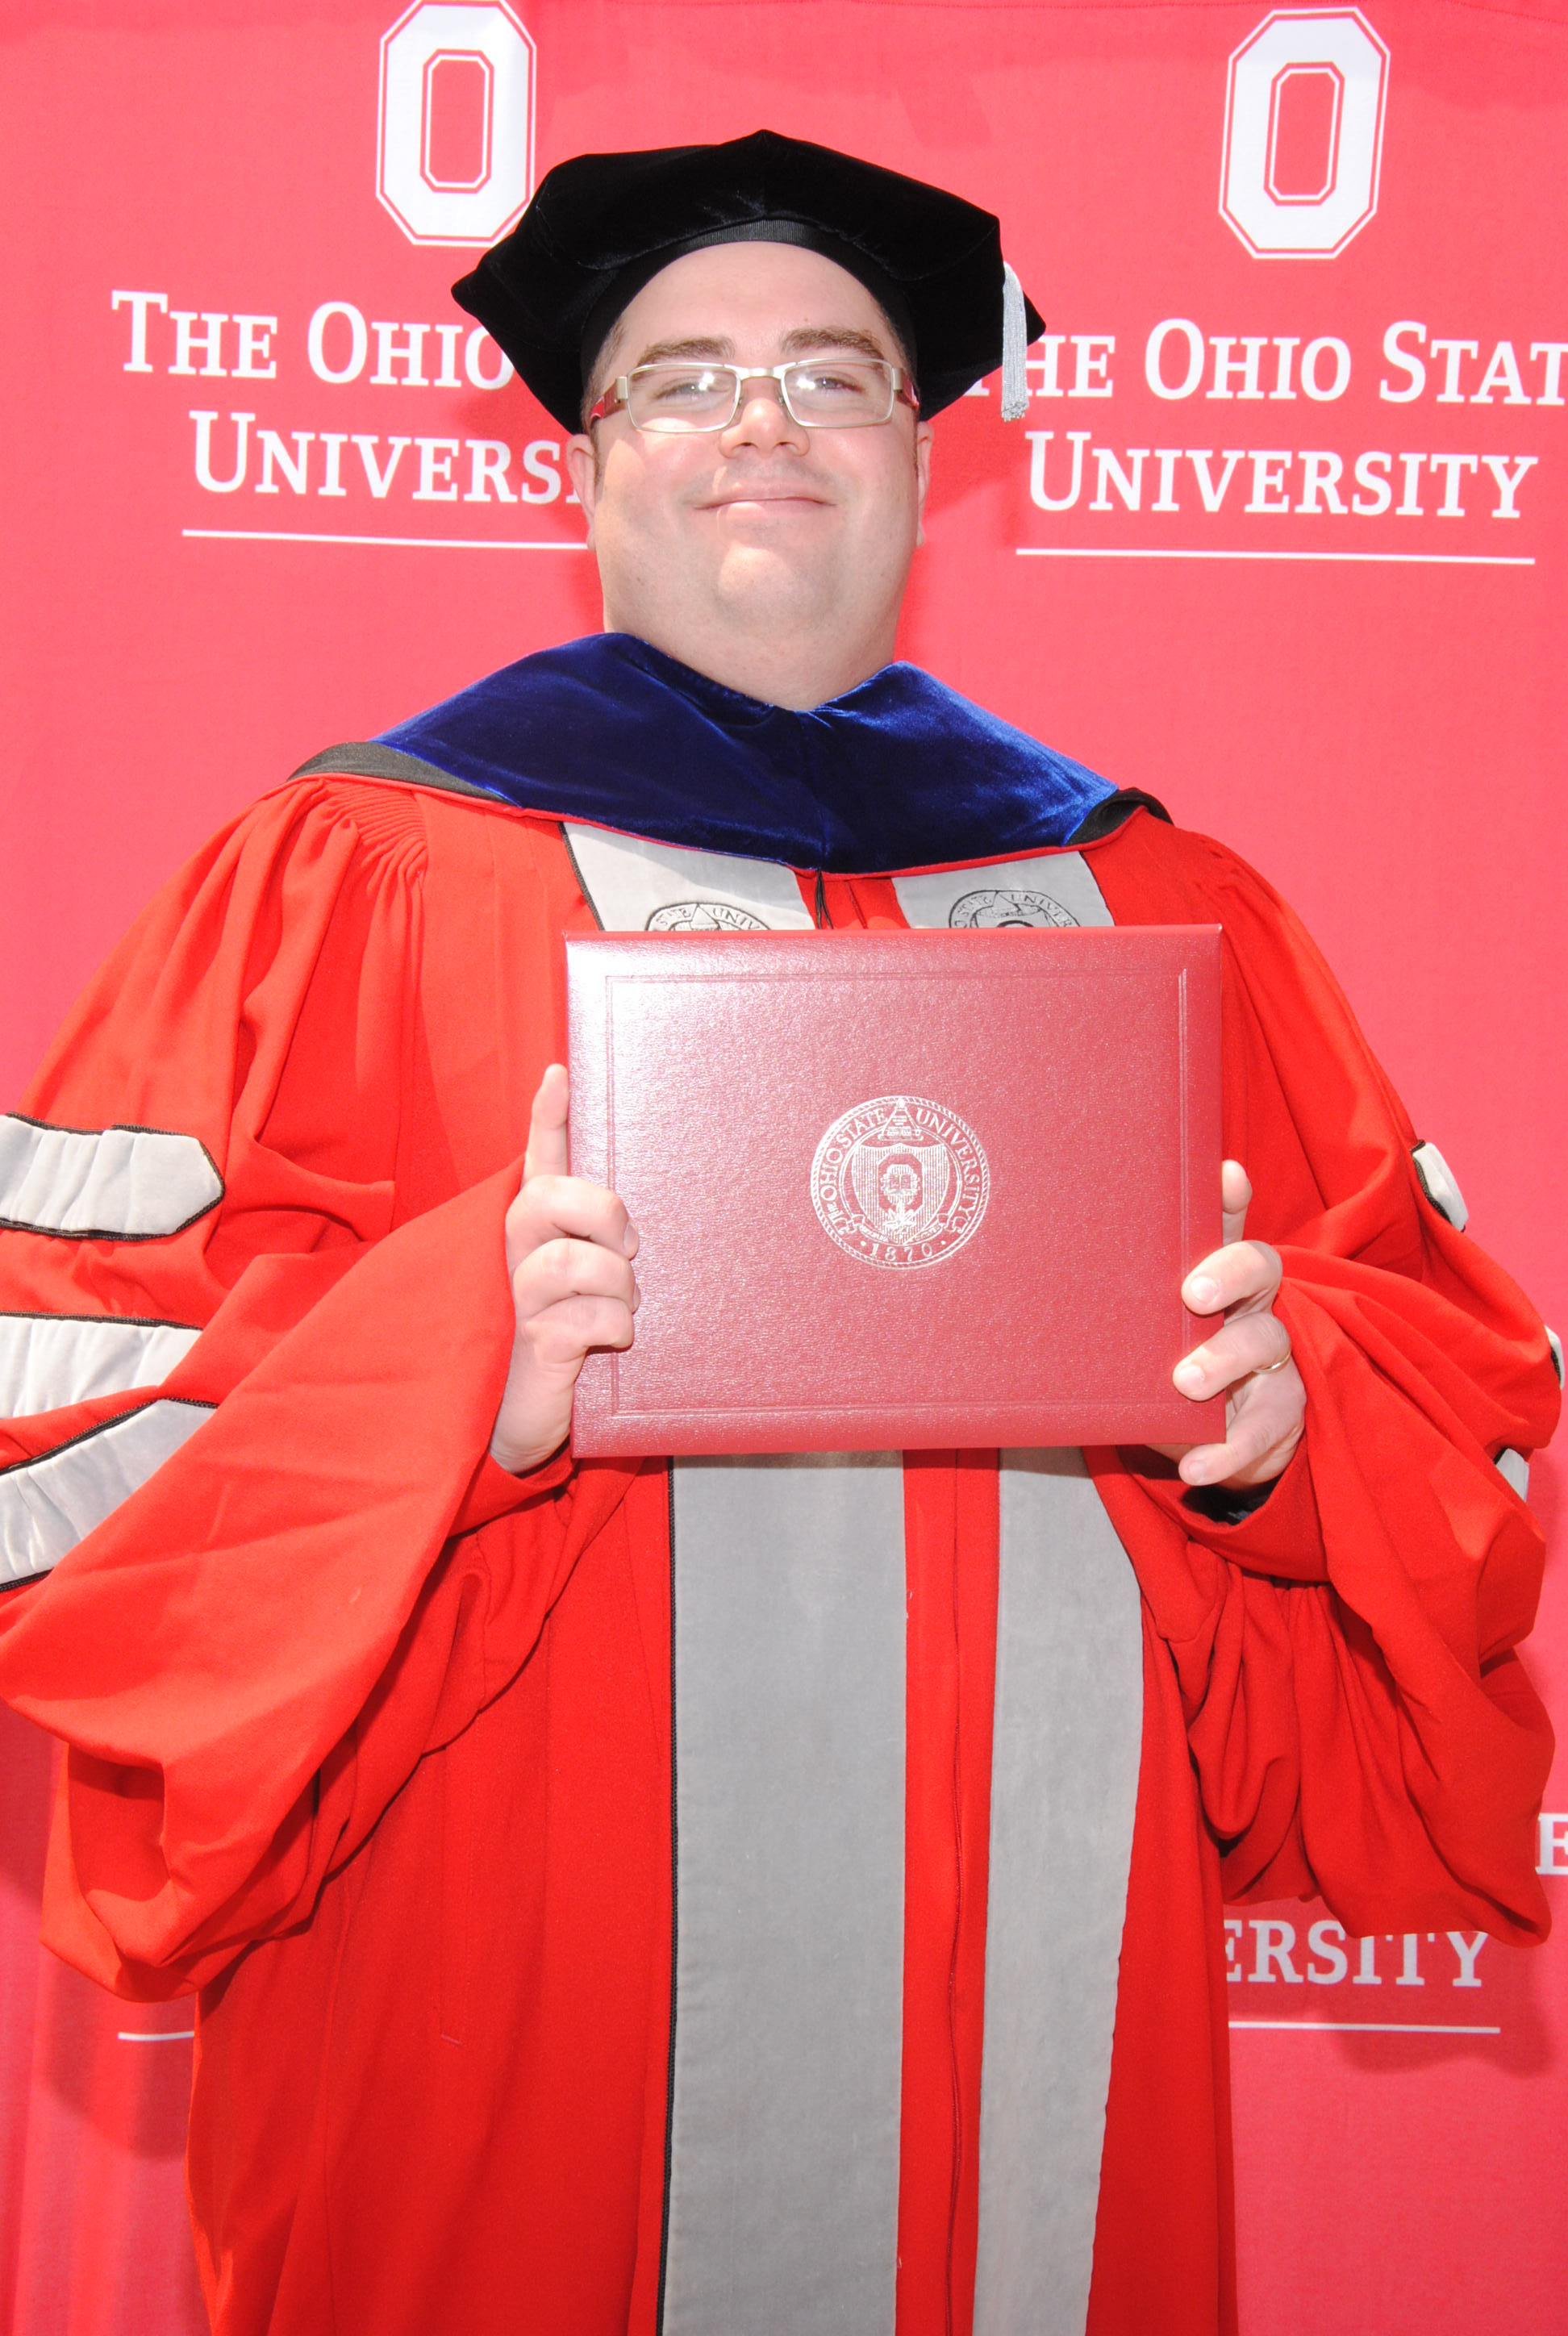 Ohio state phd thesis